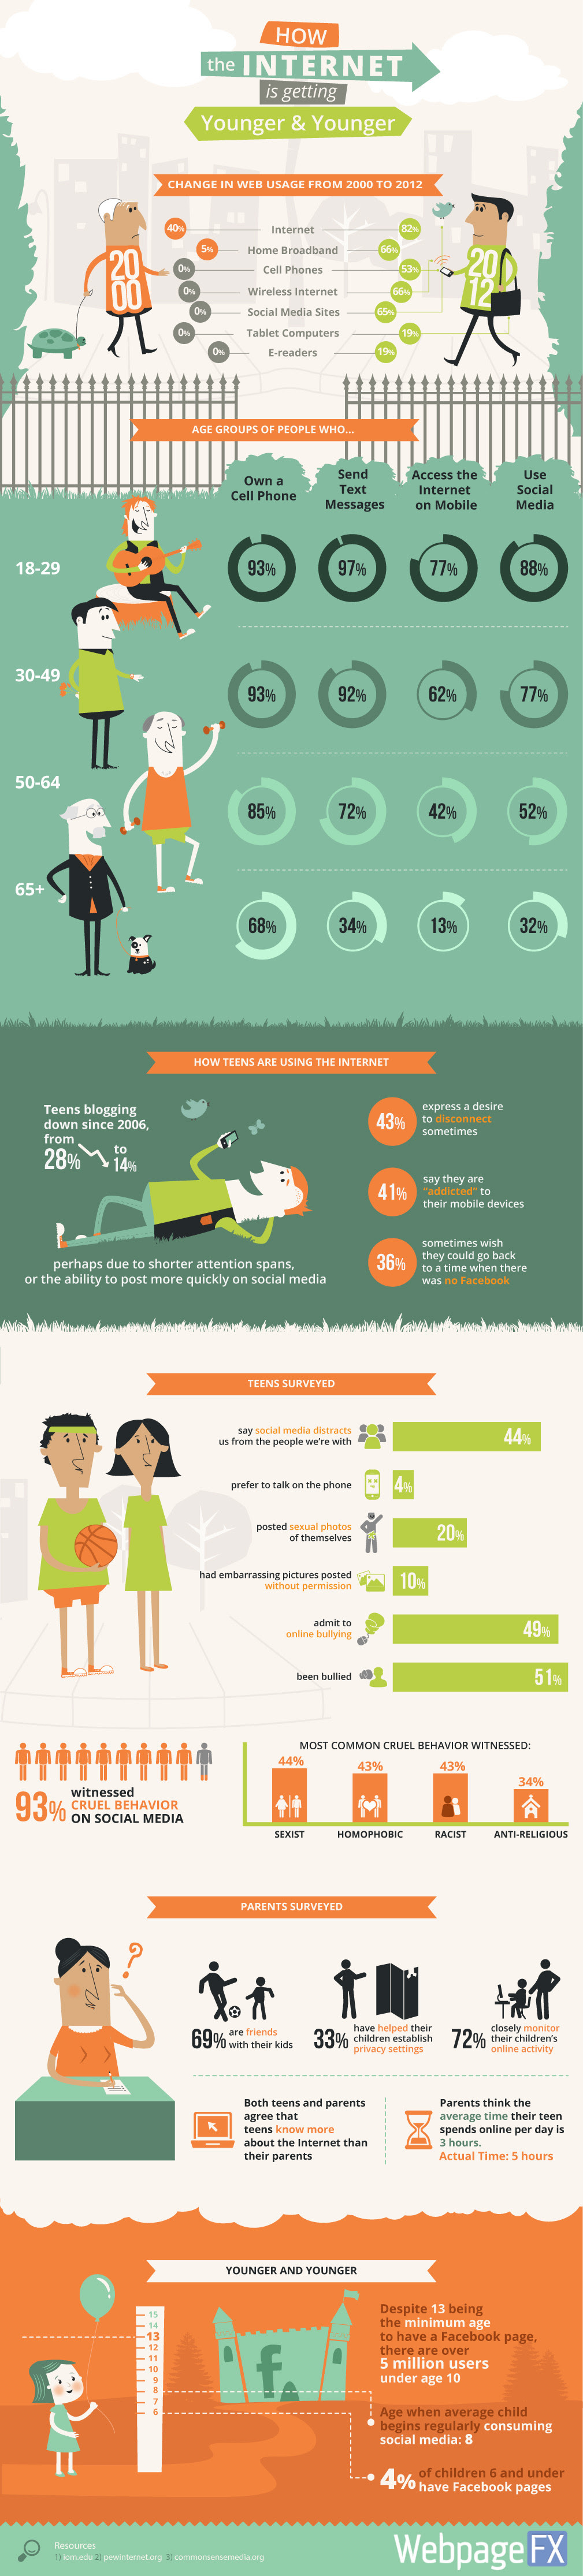 How the Internet is Getting Younger [Infographic]